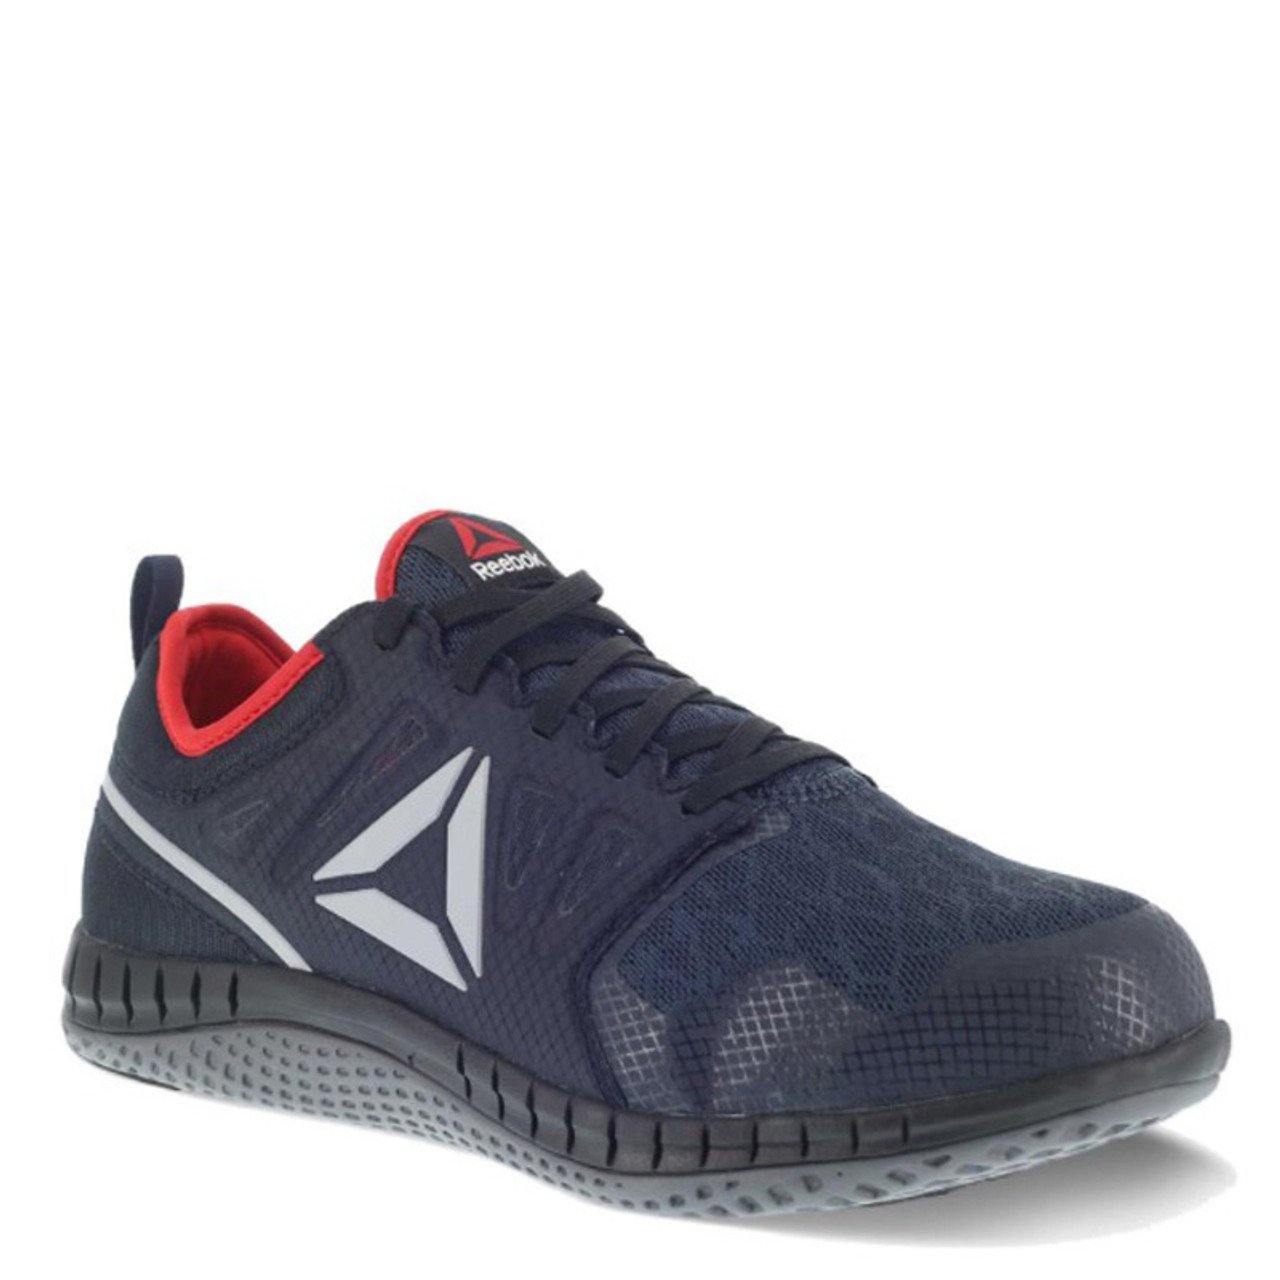 Reebok RB4250 ZPRINT Steel Toe Athletic Work Shoes